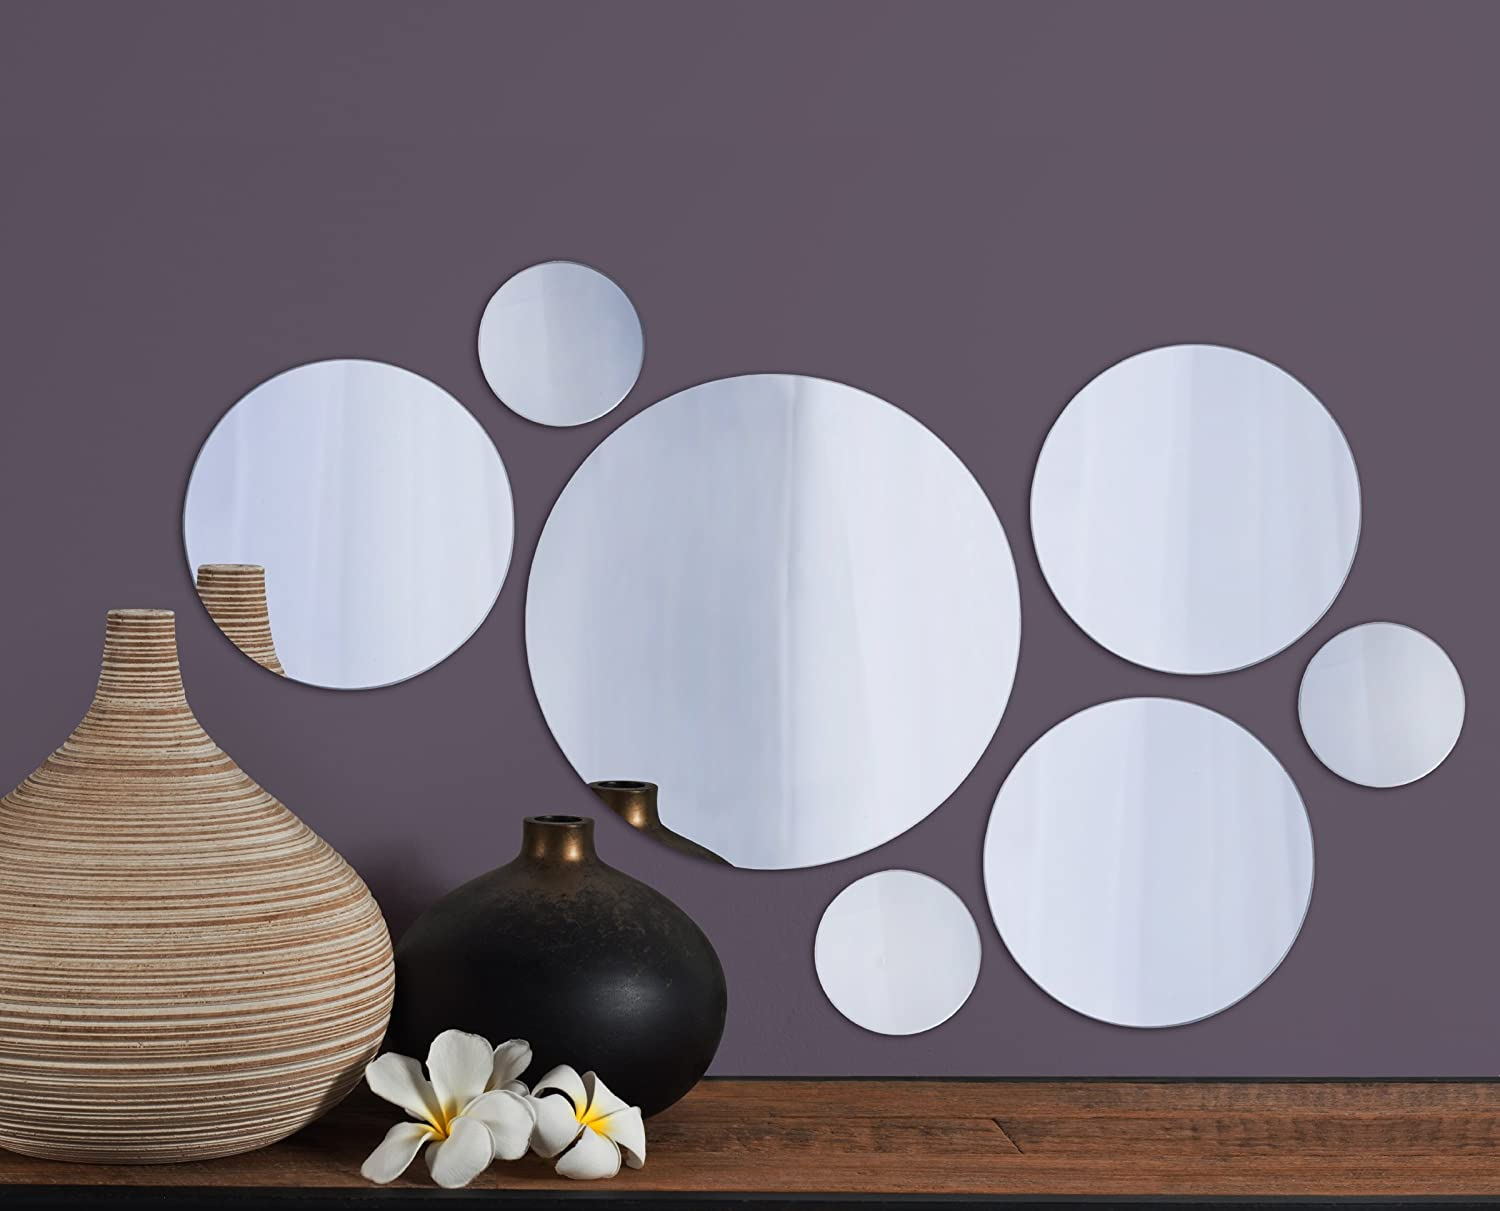 Amazon elements round wall mount mirror set of 7 assorted amazon elements round wall mount mirror set of 7 assorted sizes home kitchen amipublicfo Gallery